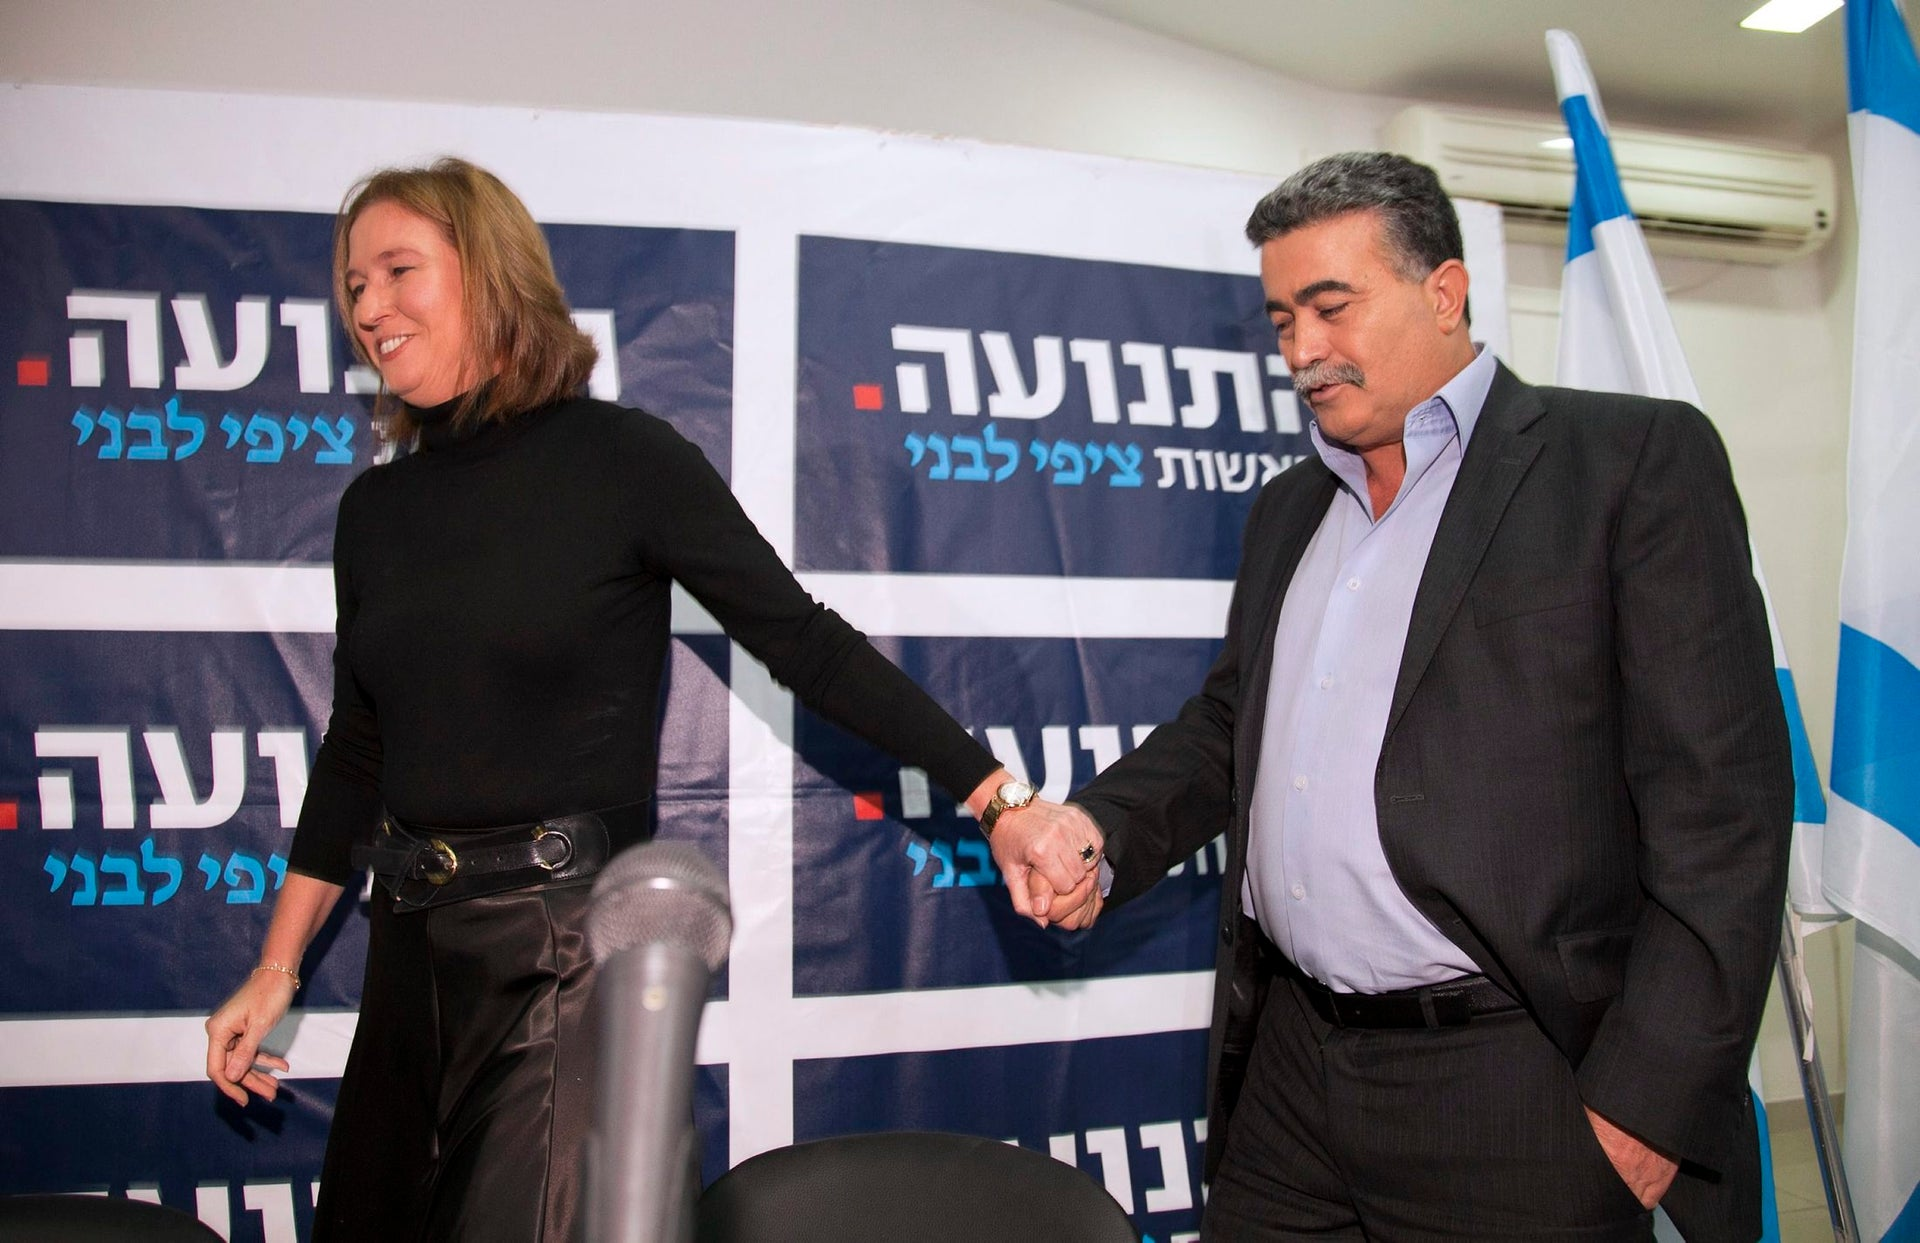 Tzipi Livni welcoming Amir Peretz into her Hatnuah party, December 6, 2012.